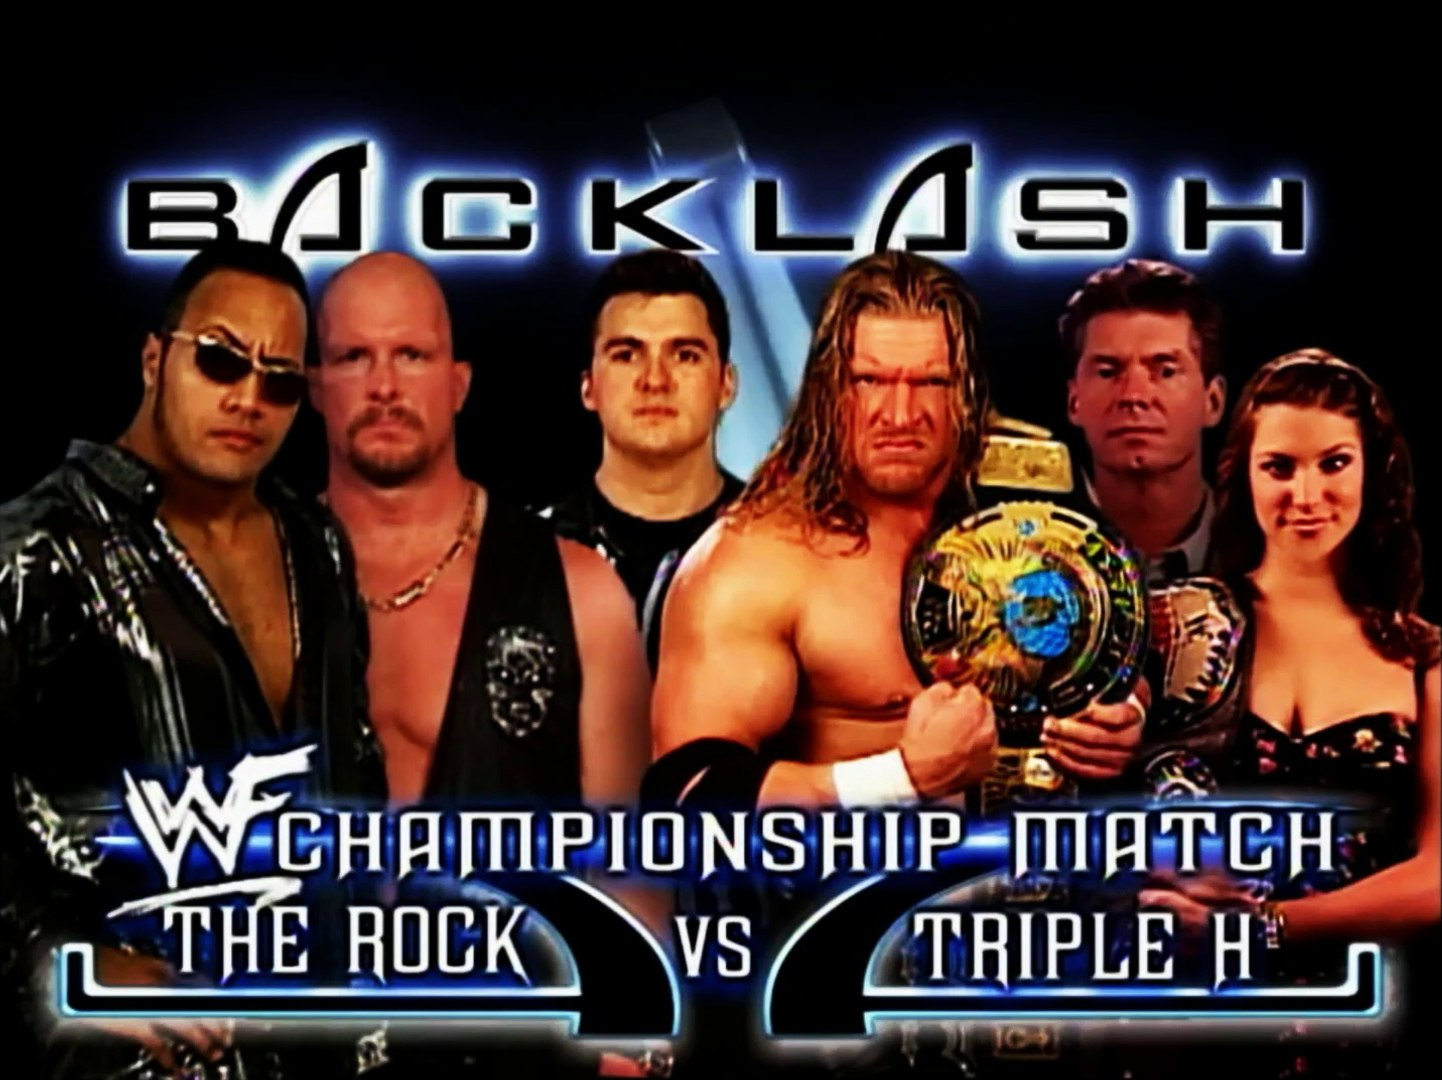 The Rock vs Triple H WWF Backlash 2000 Promo